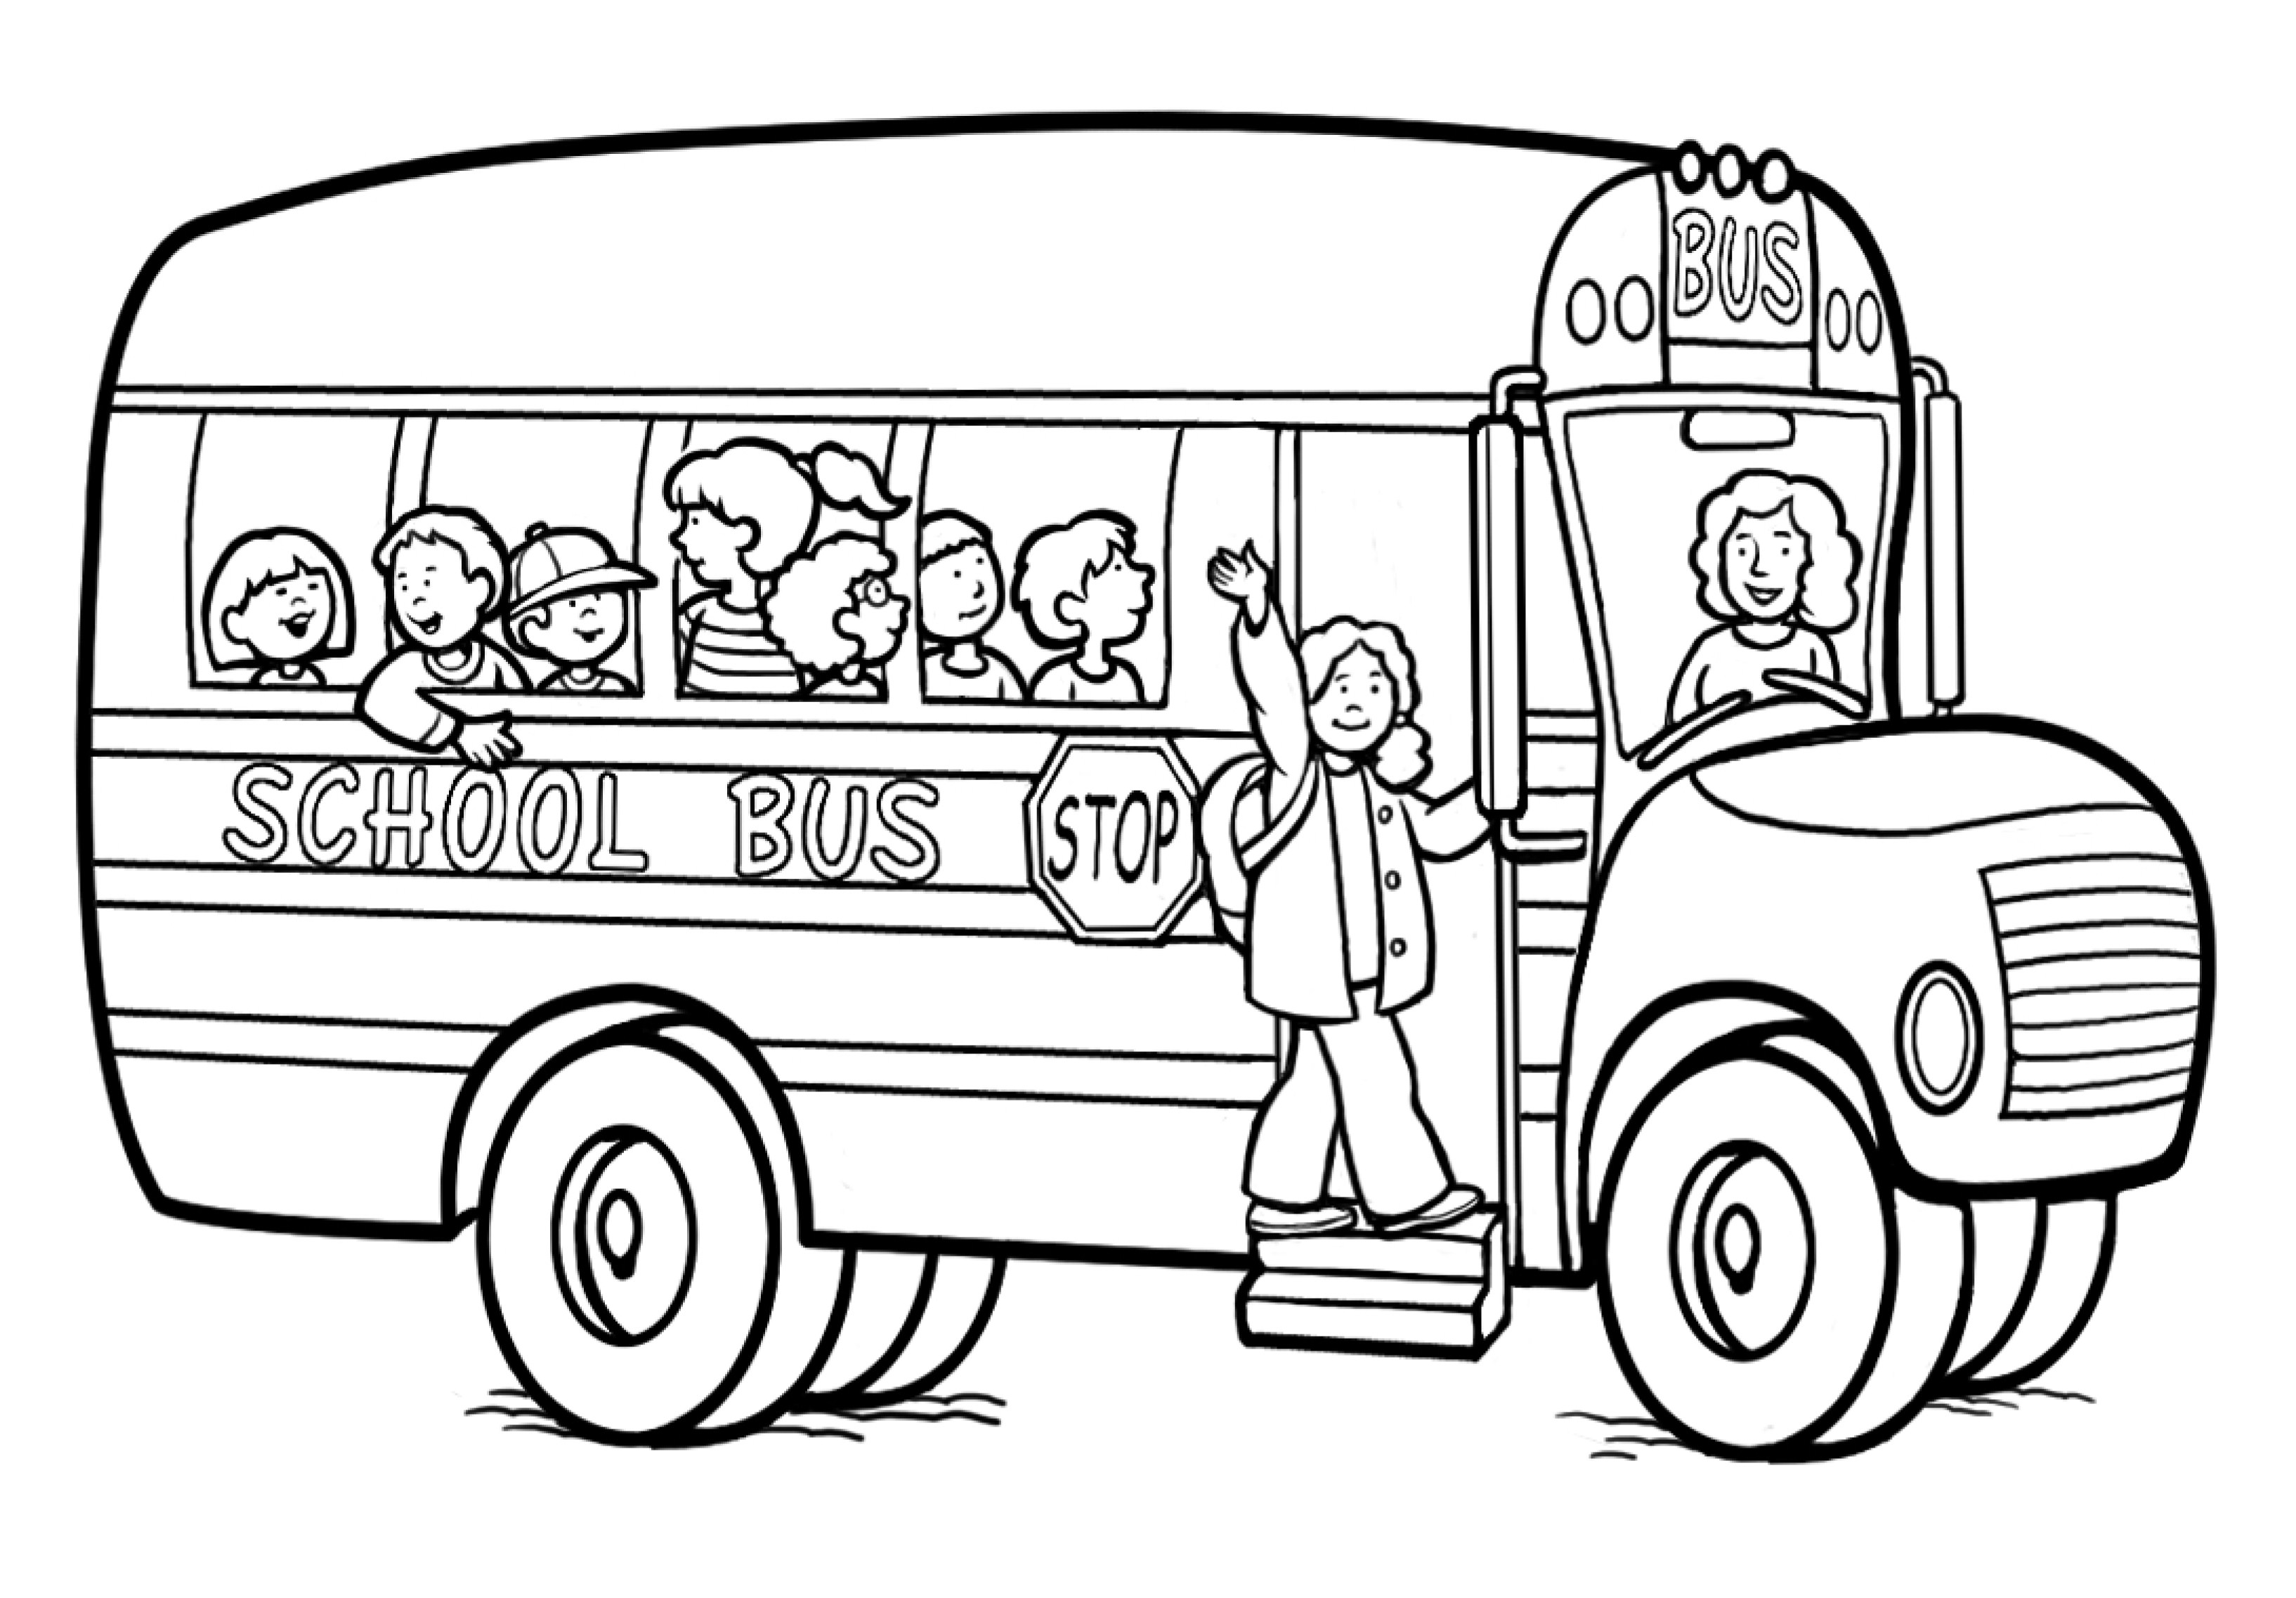 coloring sheet school bus coloring page free printable school bus coloring pages for kids coloring page coloring bus school sheet